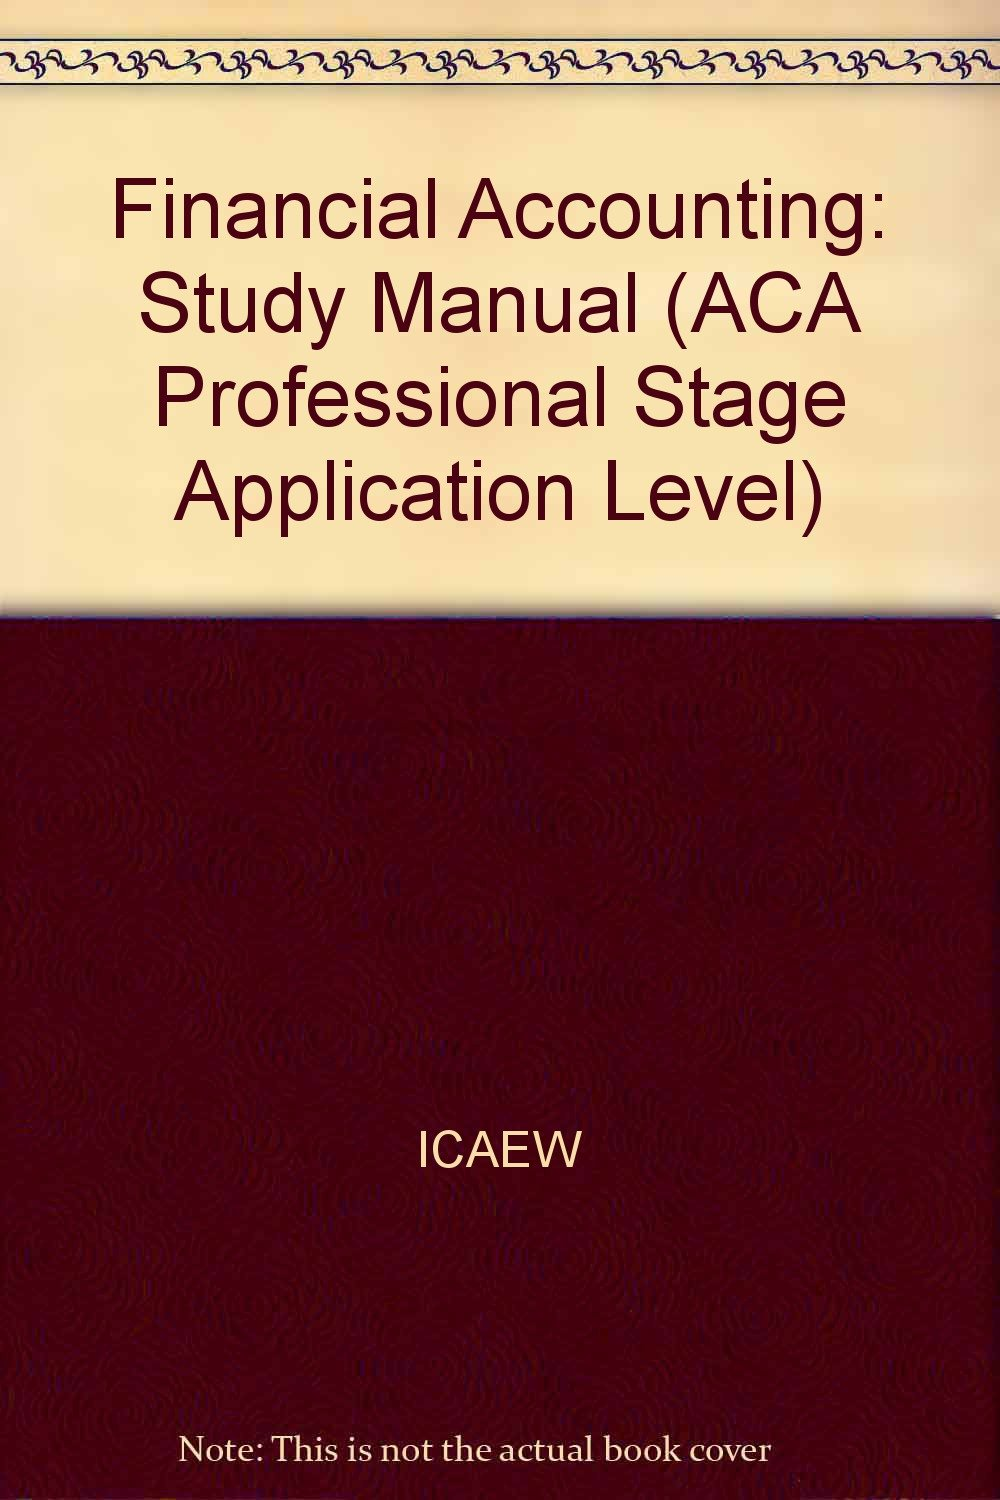 Financial Accounting: Study Manual (ACA Professional Stage Application  Level): Amazon.co.uk: ICAEW: Books